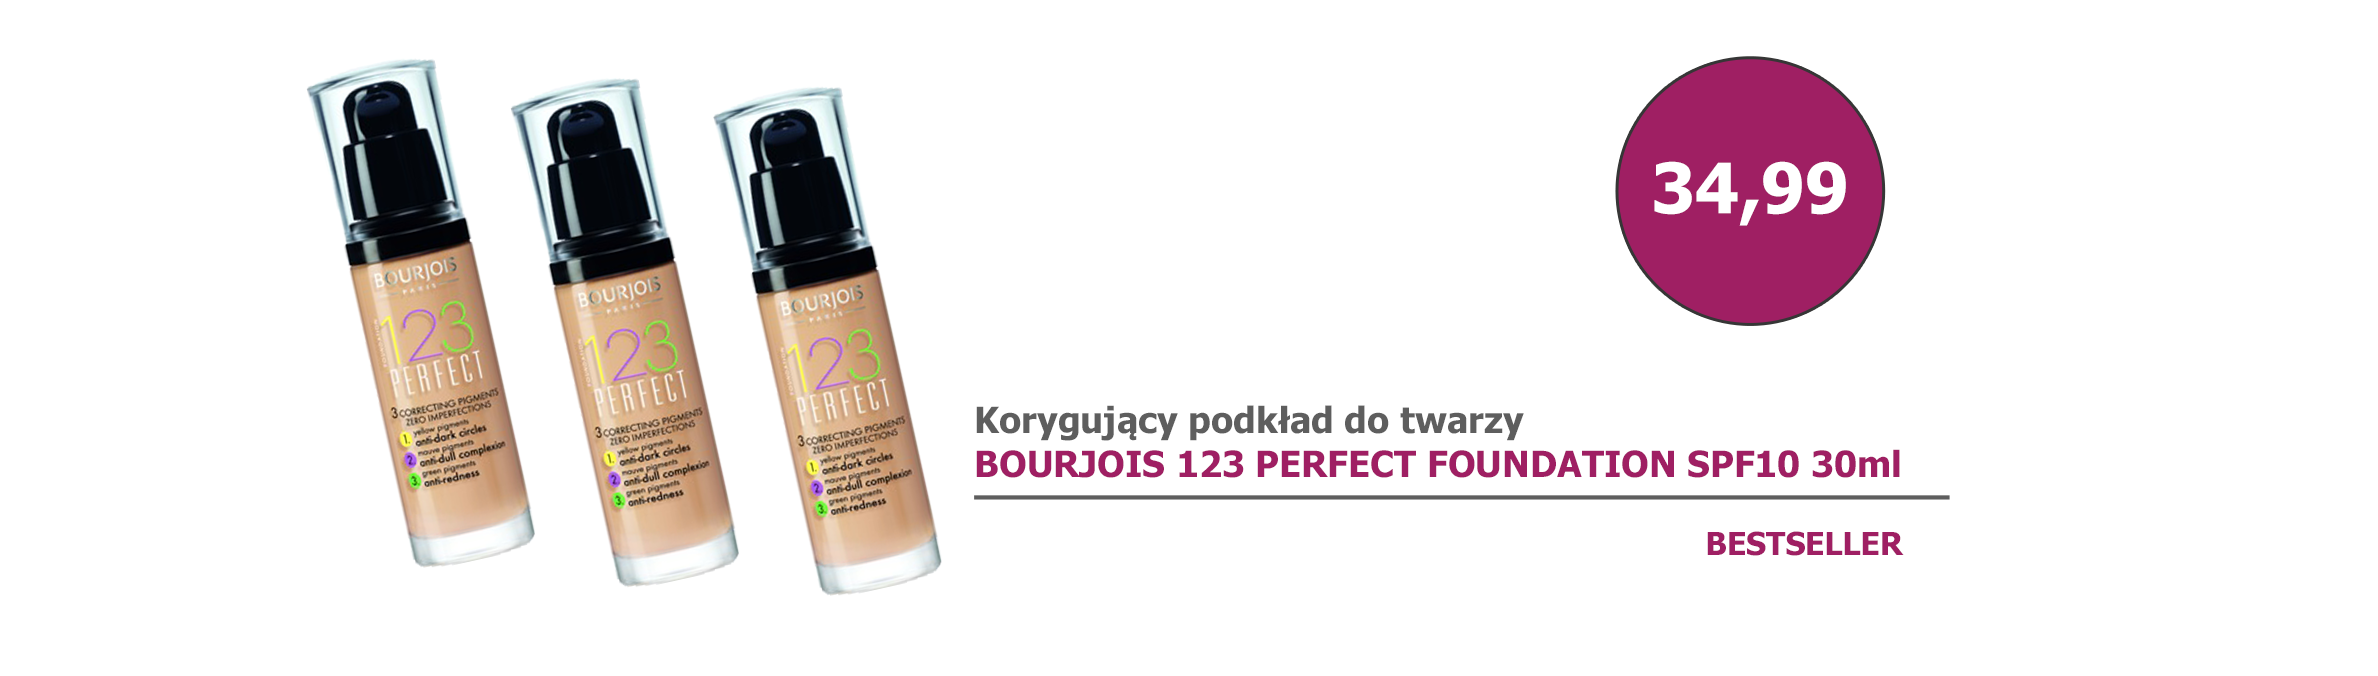 BESTSELLER - BOURJOIS 123 PERFECT FOUNDATION SPF10 30ml